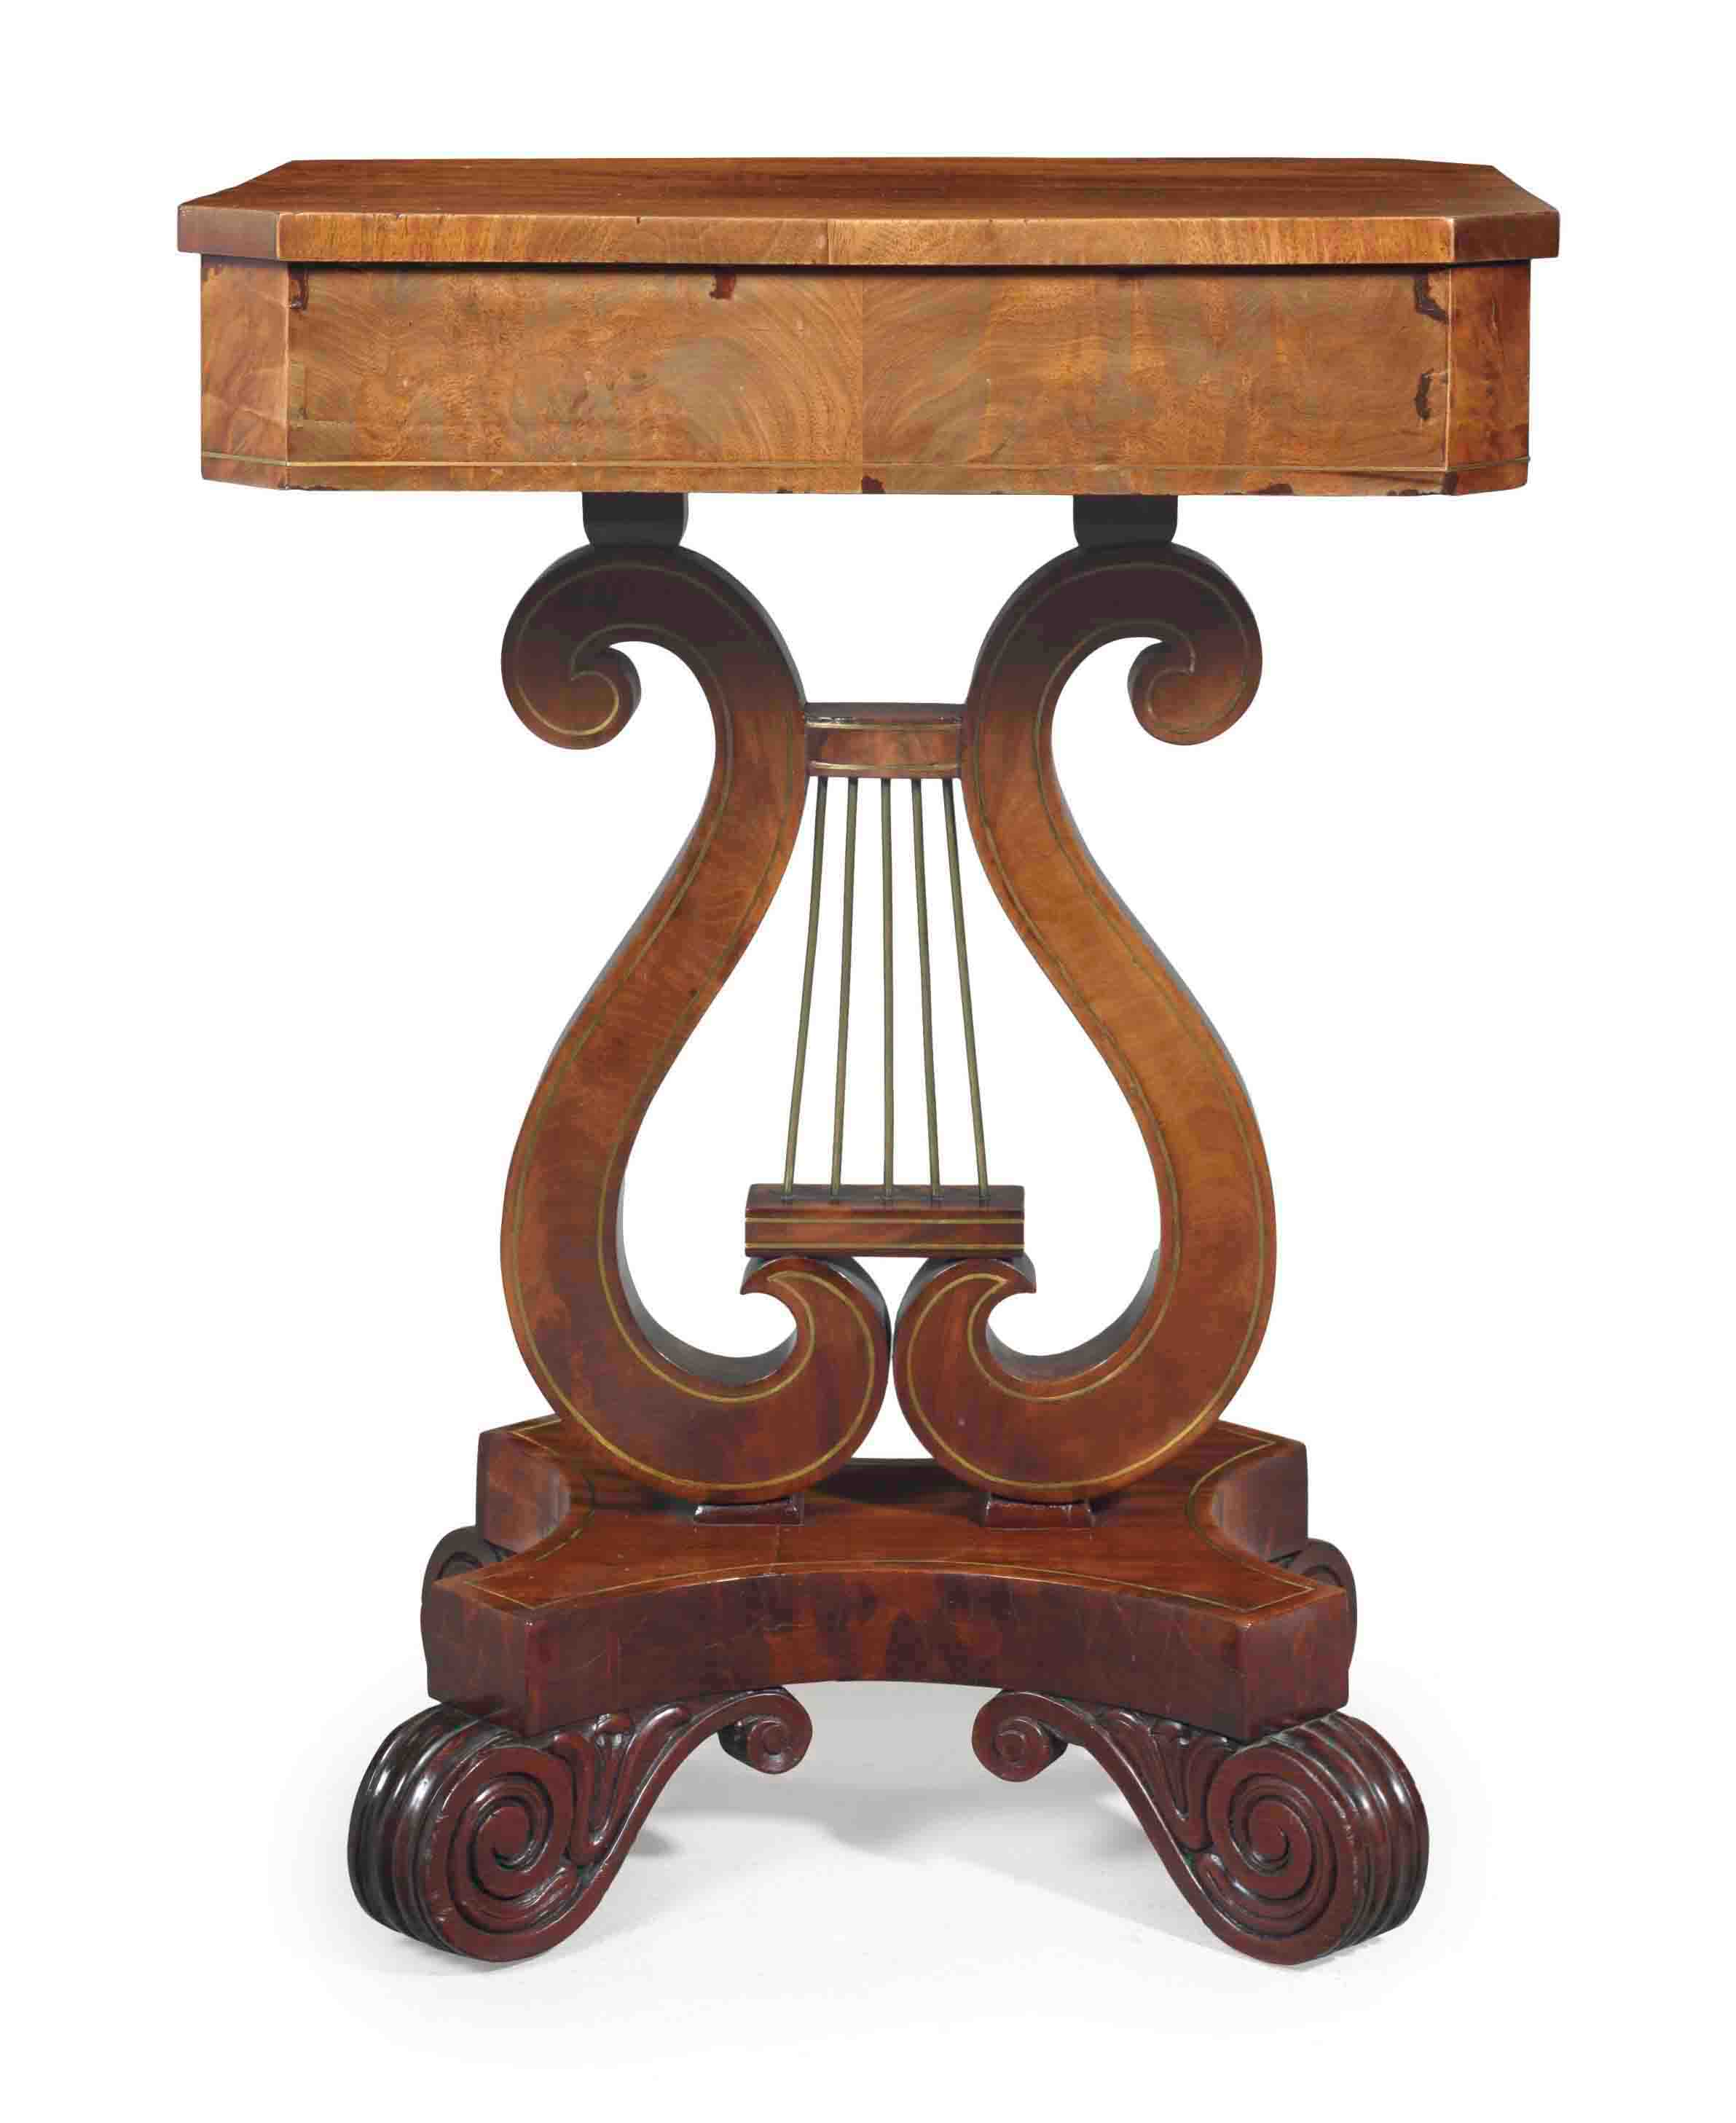 A CLASSICAL MAHOGANY AND BRASS-INLAID SIDE TABLE